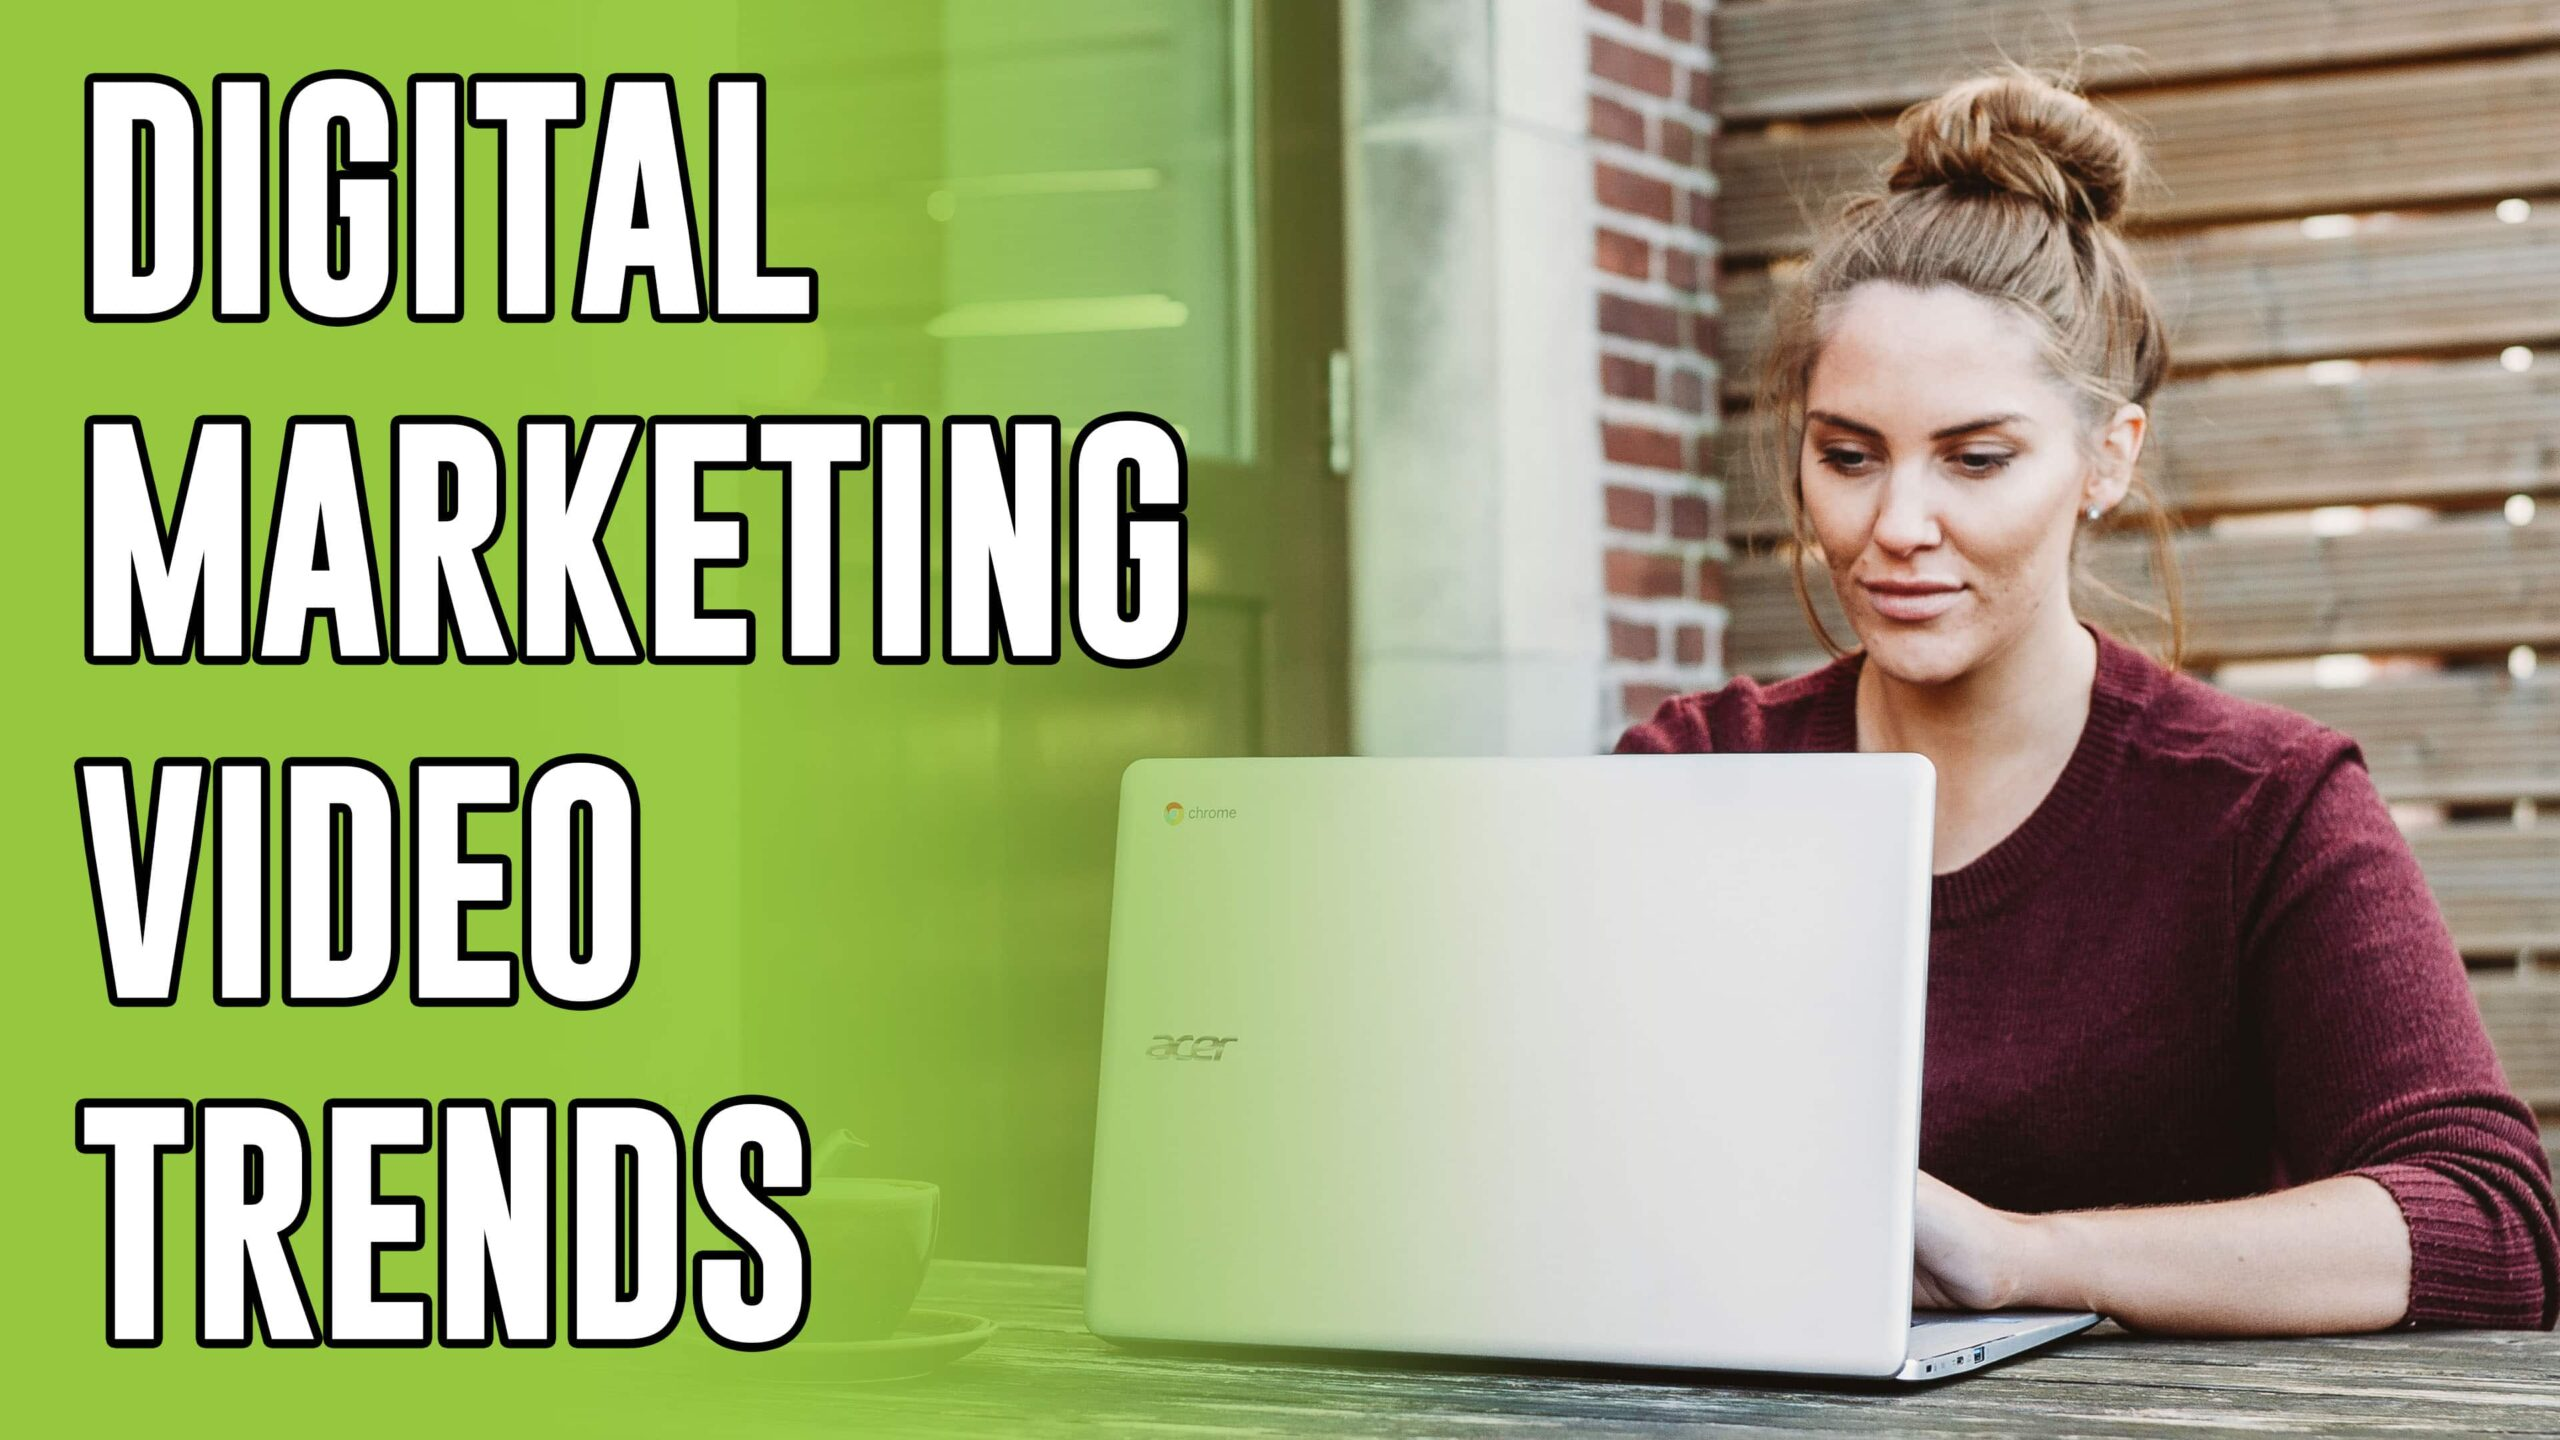 Middle age woman on a laptop. Text that reads out: Digital Marketing Video Trends